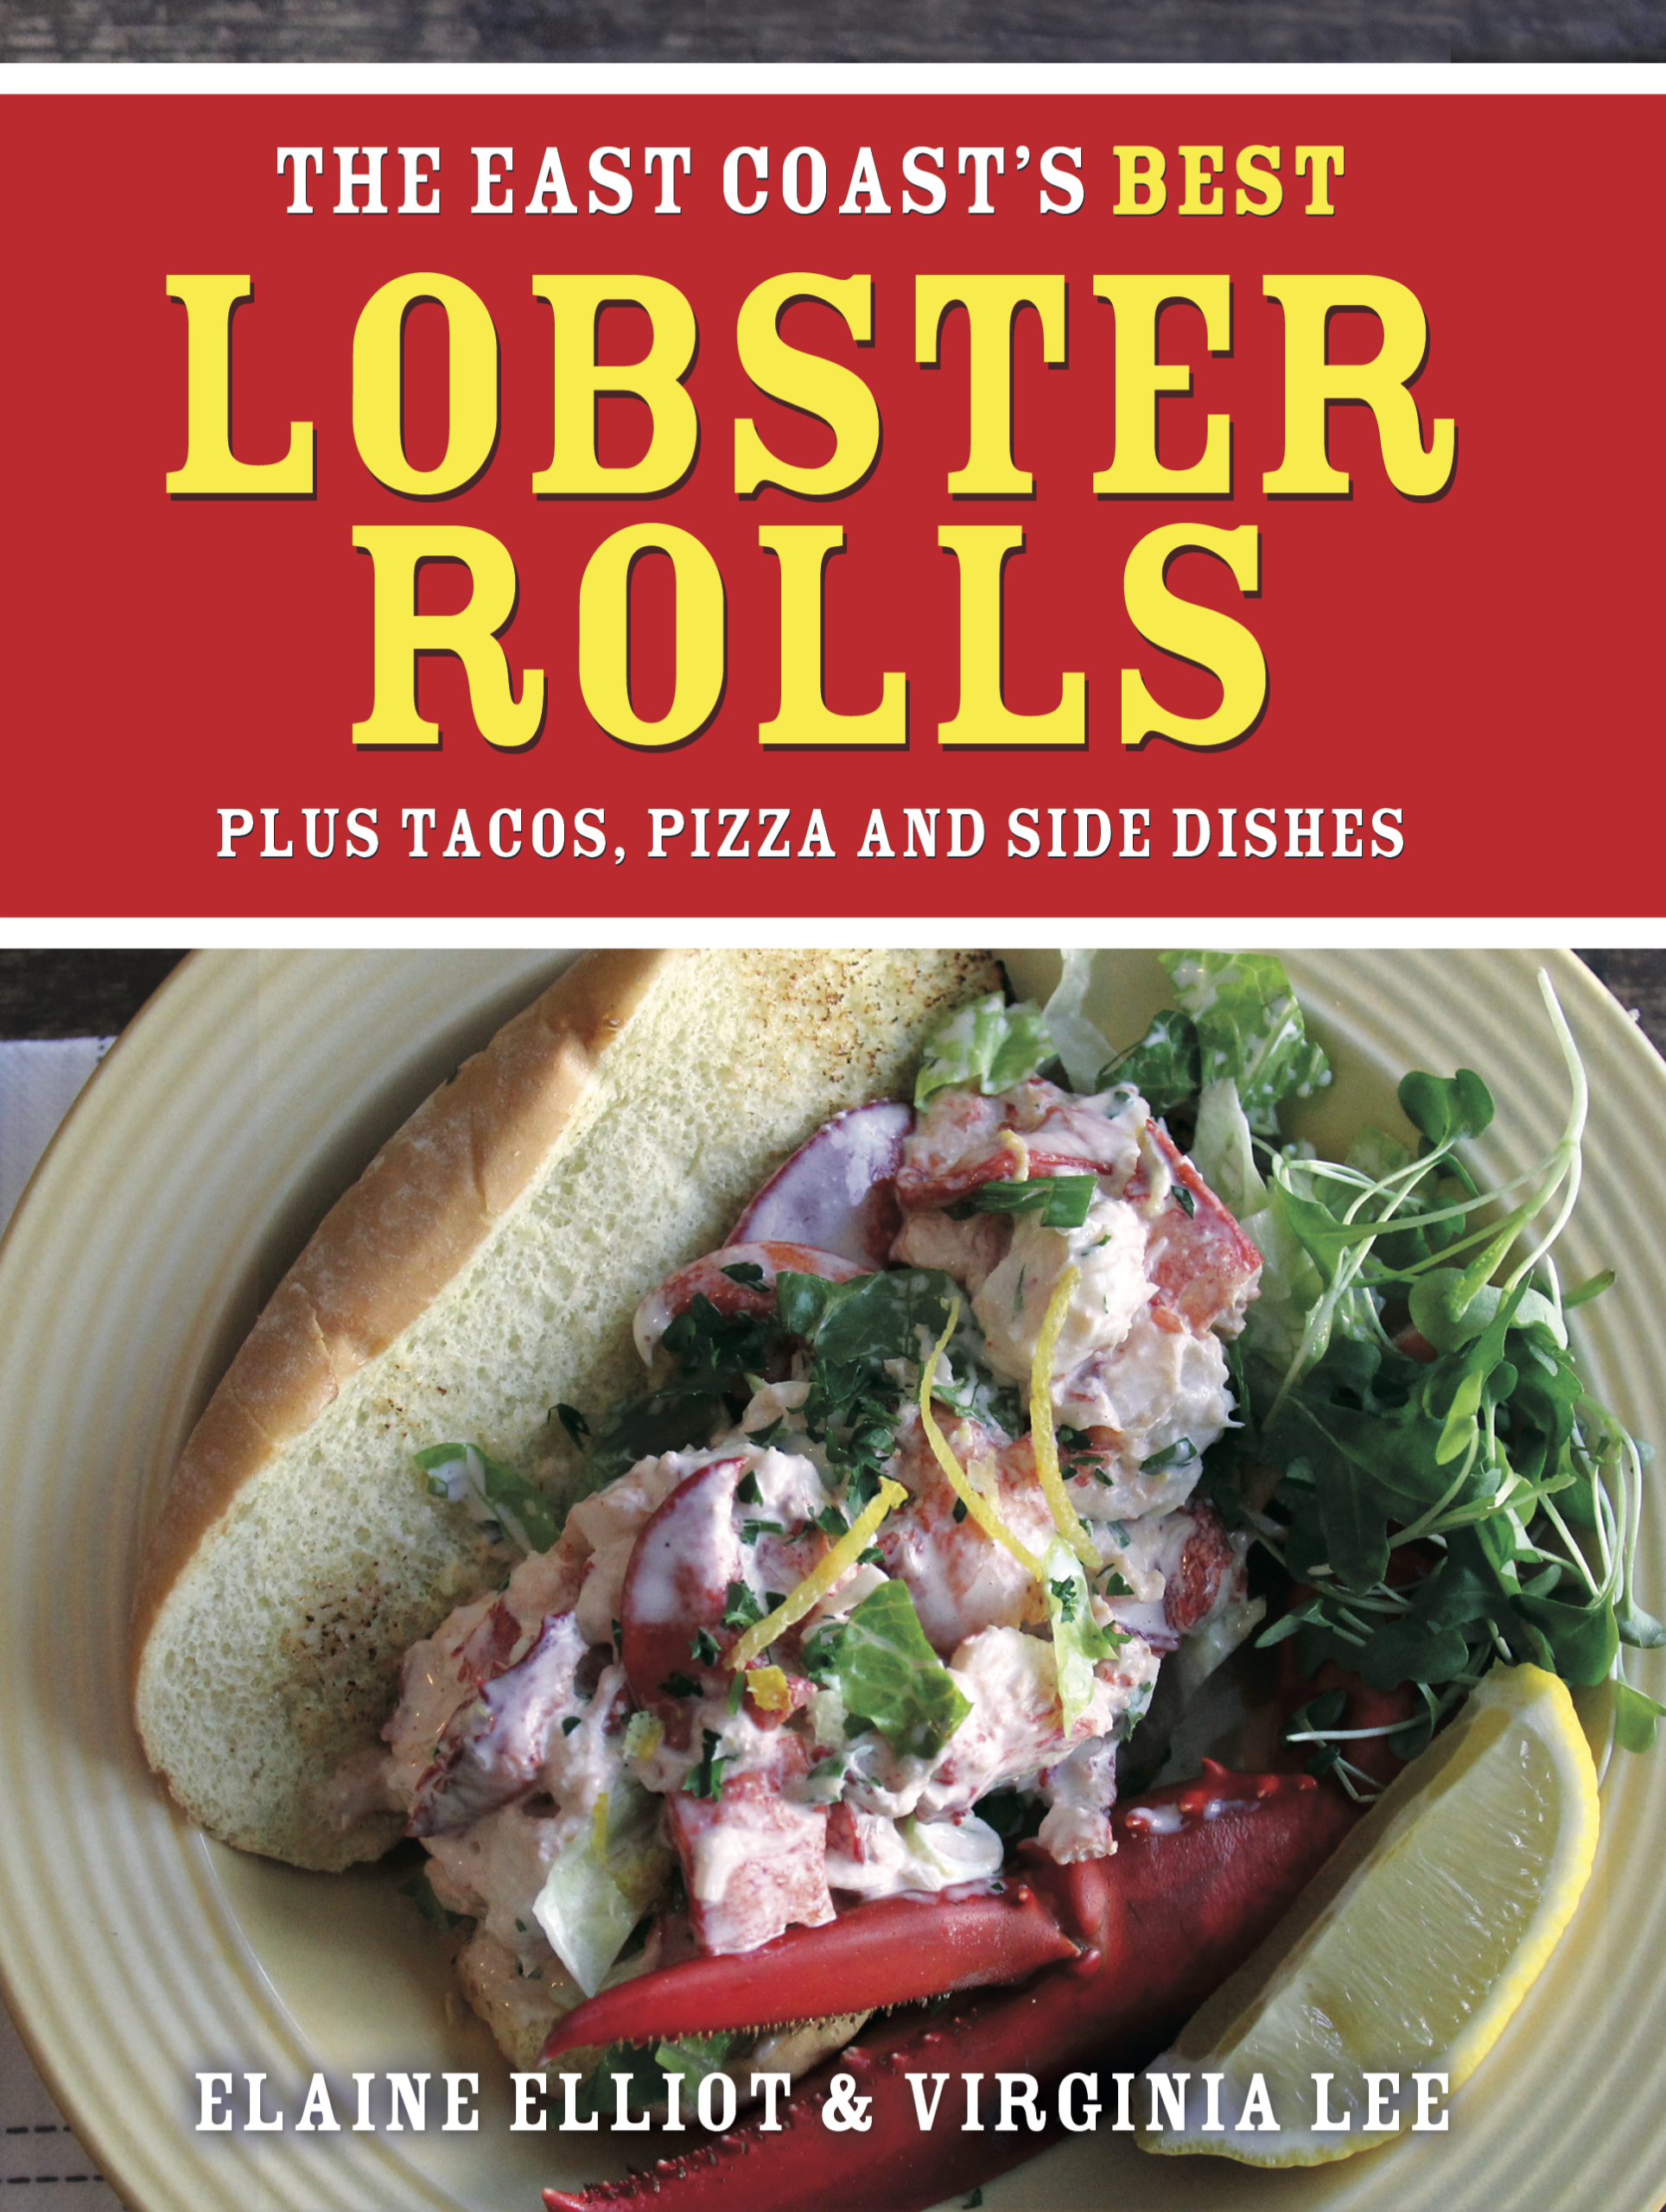 The East Coast's Best Lobster Rolls